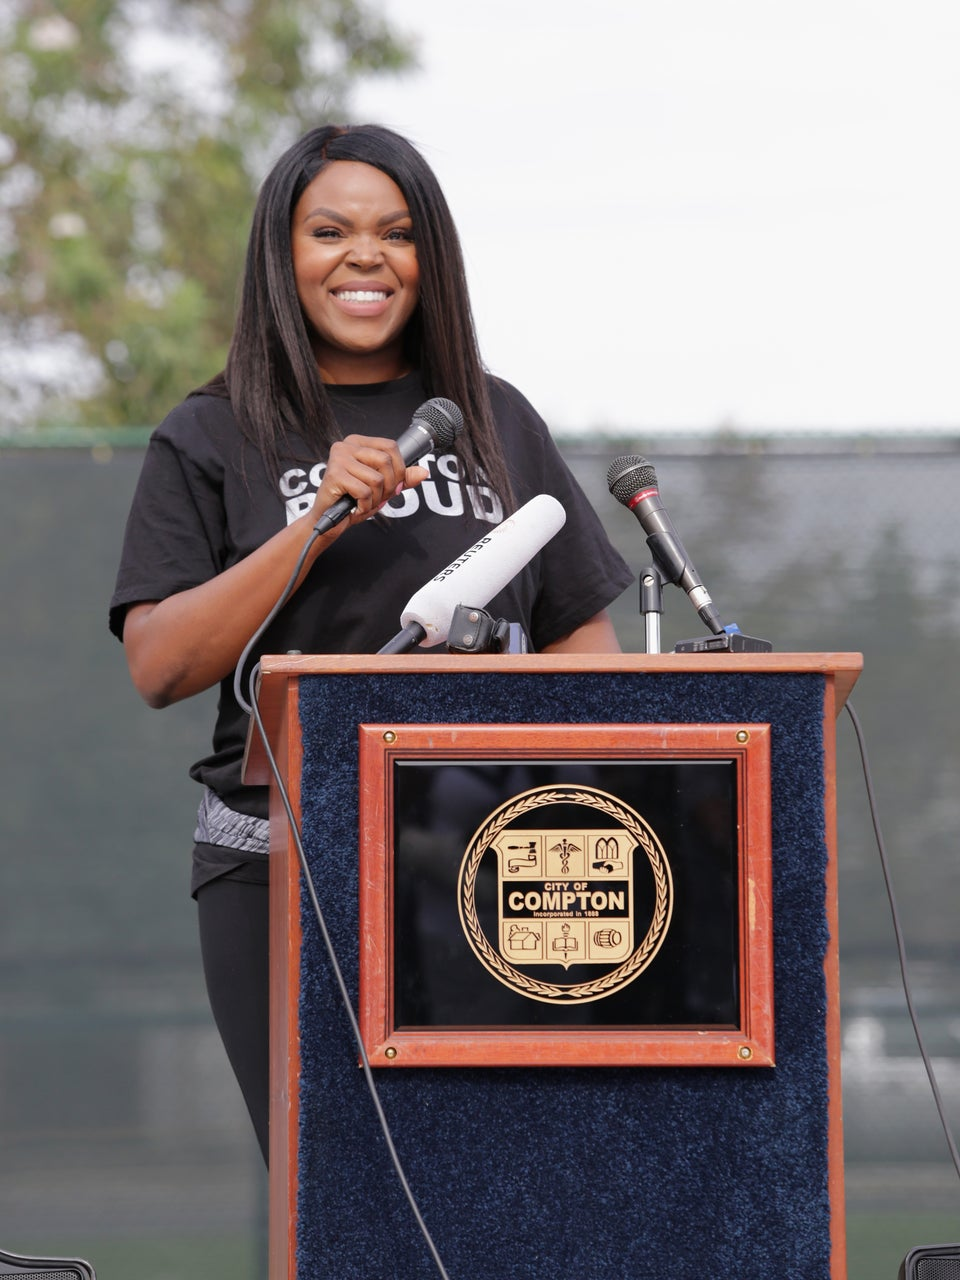 Compton Mayor Aja Brown Drops Out Of Congressional Race